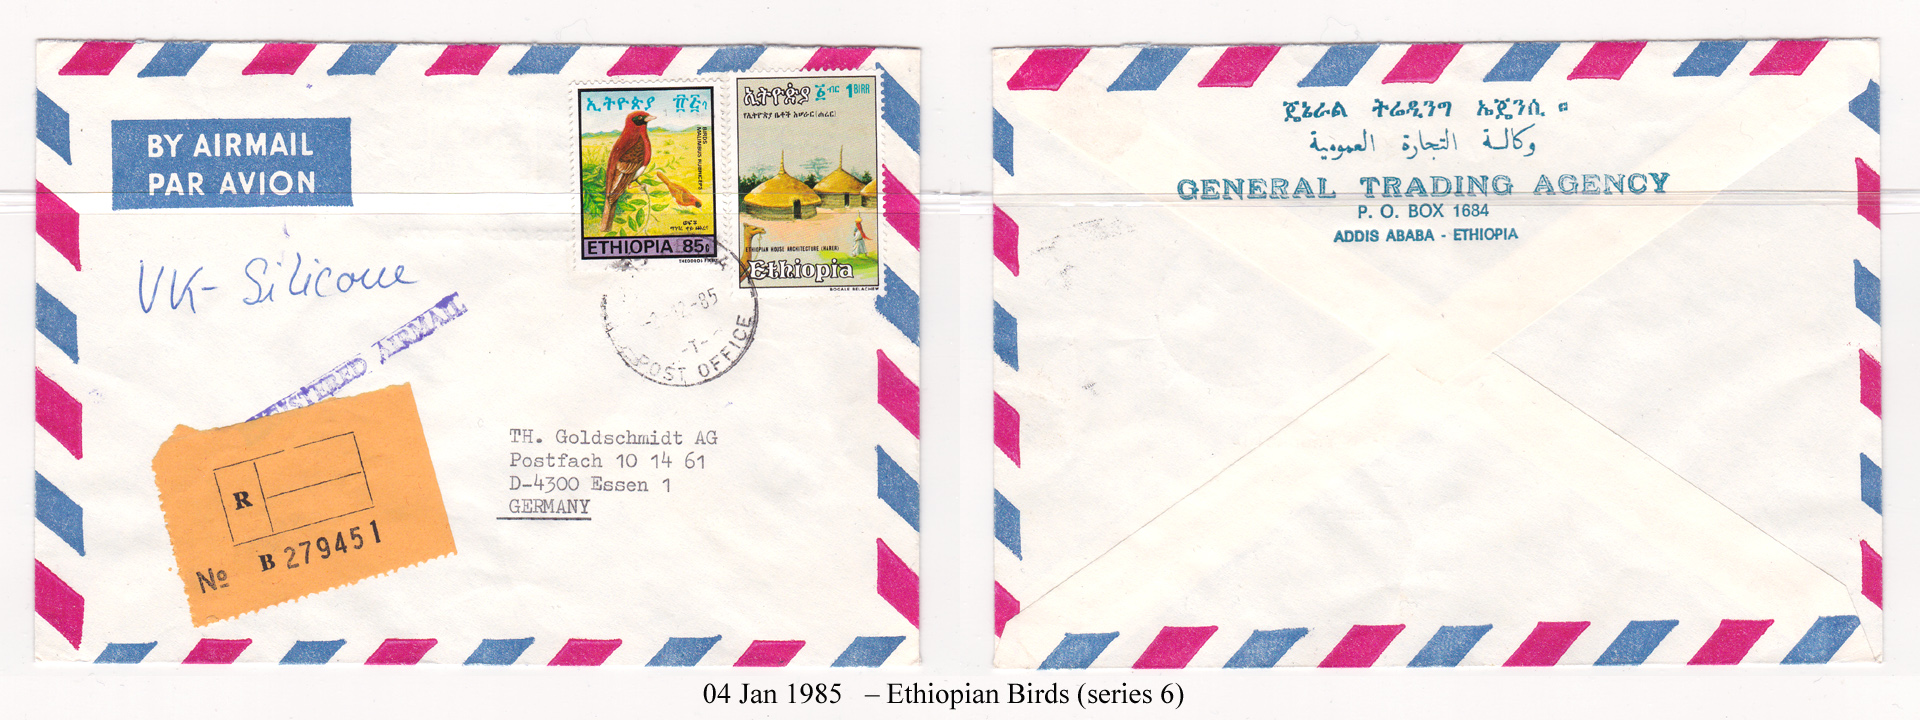 19850104 - Ethiopian Birds (series 6)